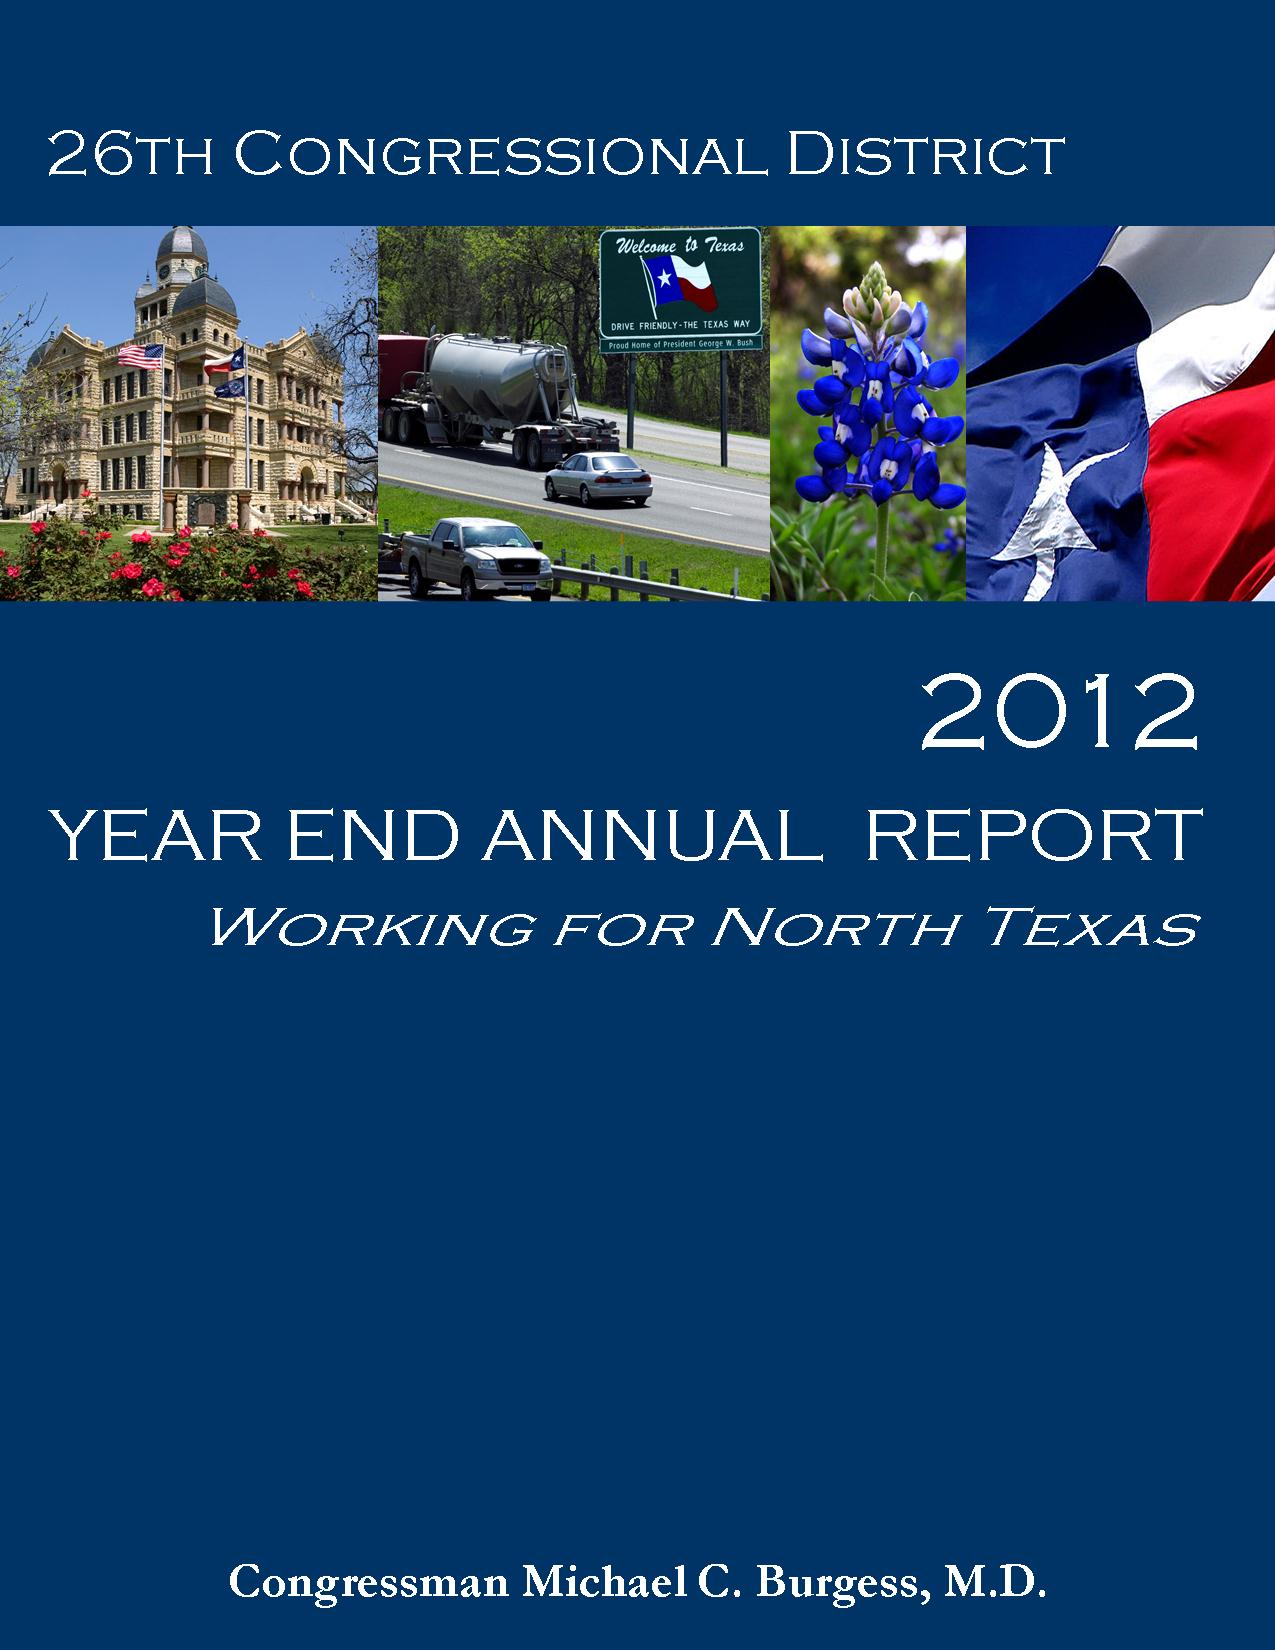 http://burgess.house.gov/uploadedfiles/2012_year_end_annual_report_image.jpg